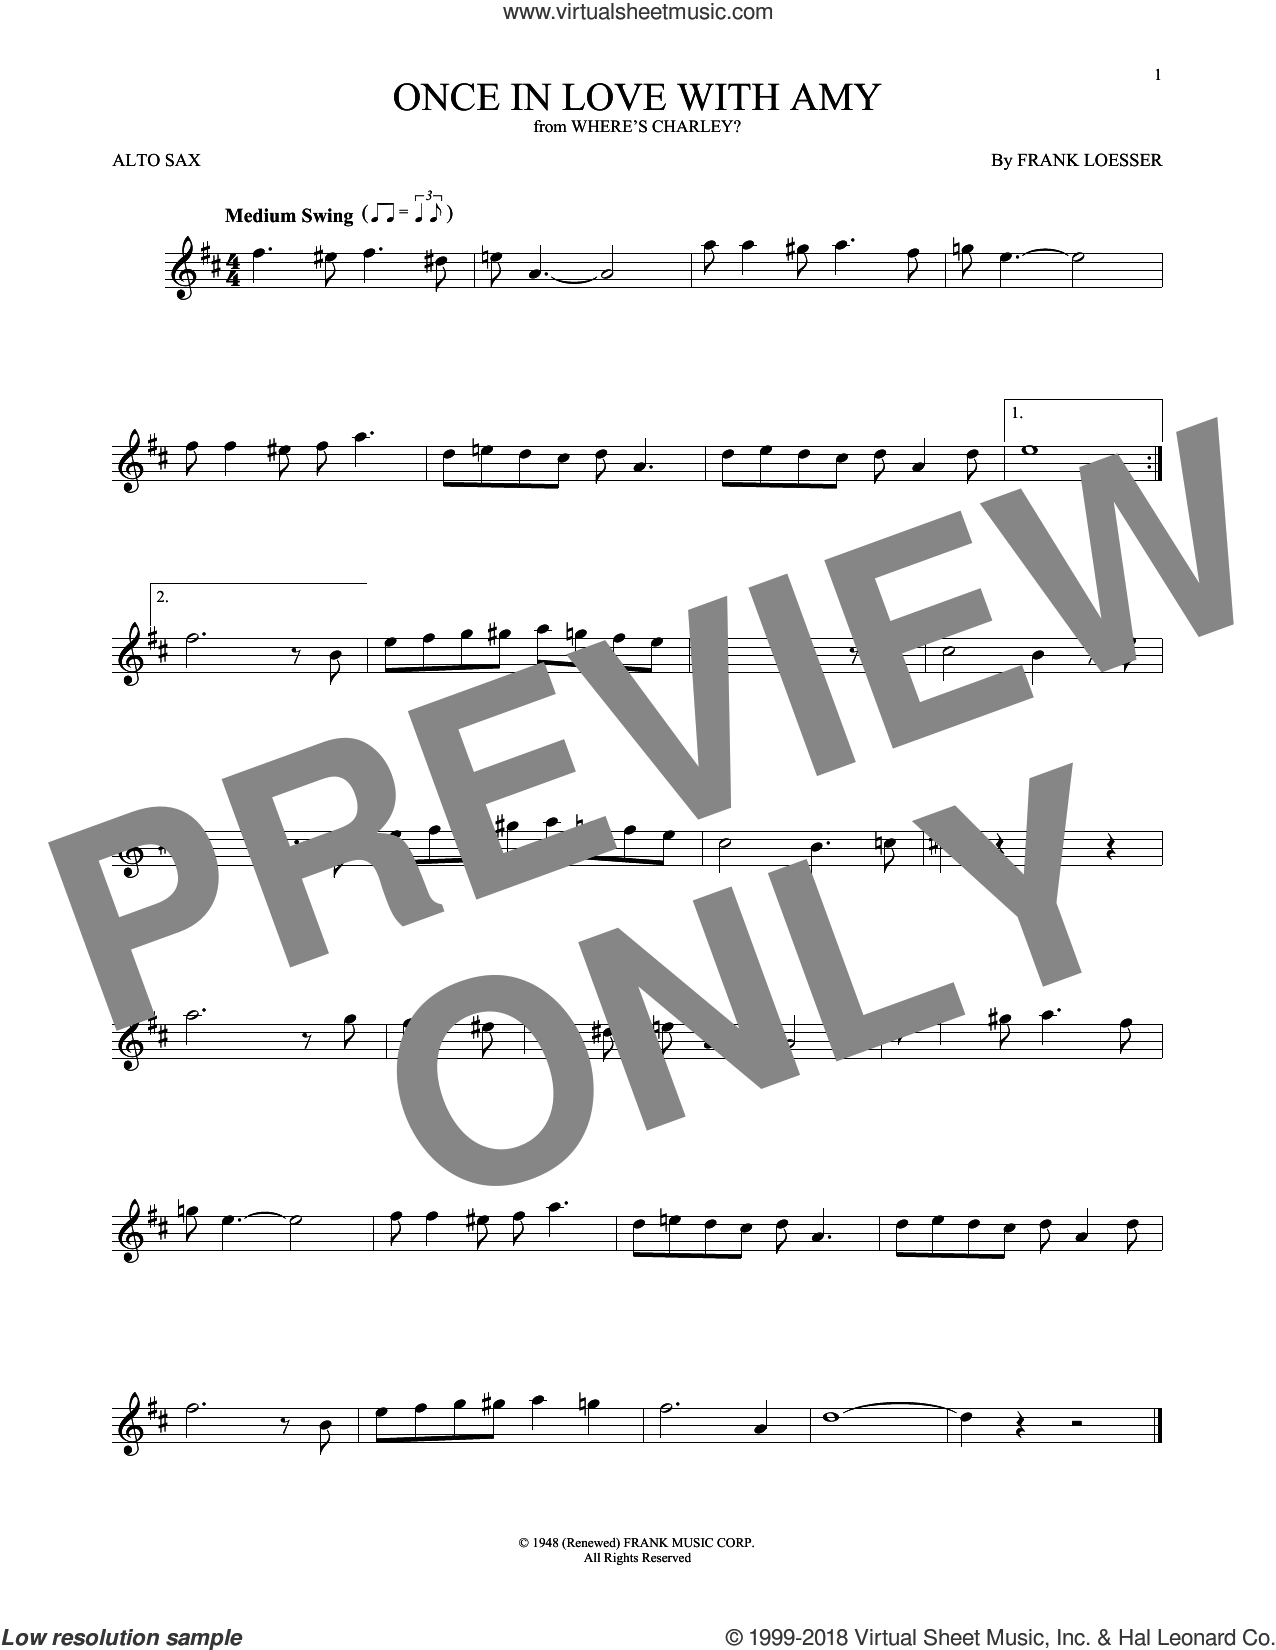 Once In Love With Amy sheet music for alto saxophone solo by Frank Loesser, intermediate skill level